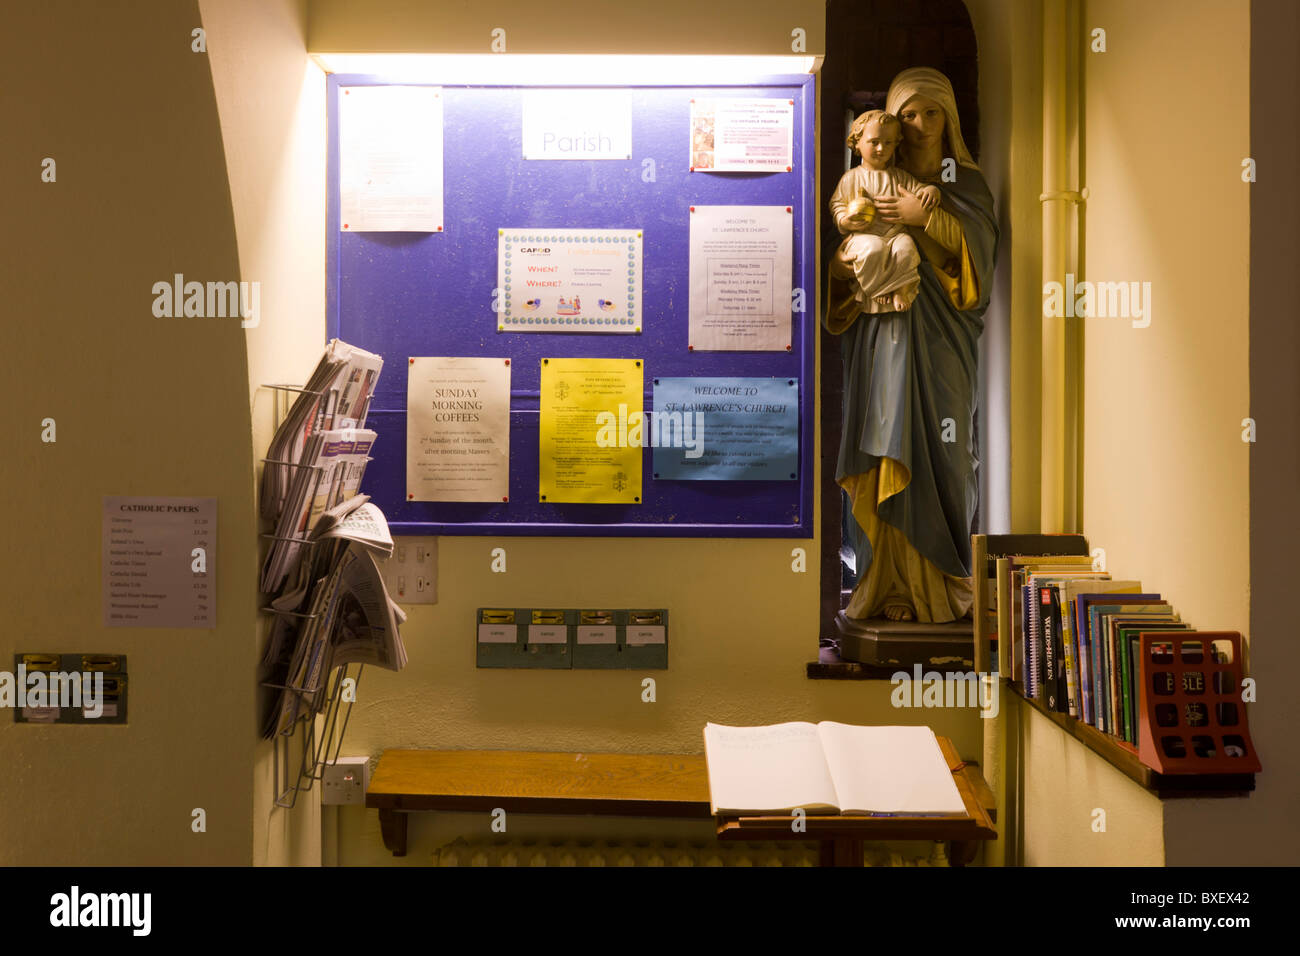 Noticeboard with Mary and Jesus figures at St. Lawrence's Catholic church in Feltham, London. - Stock Image